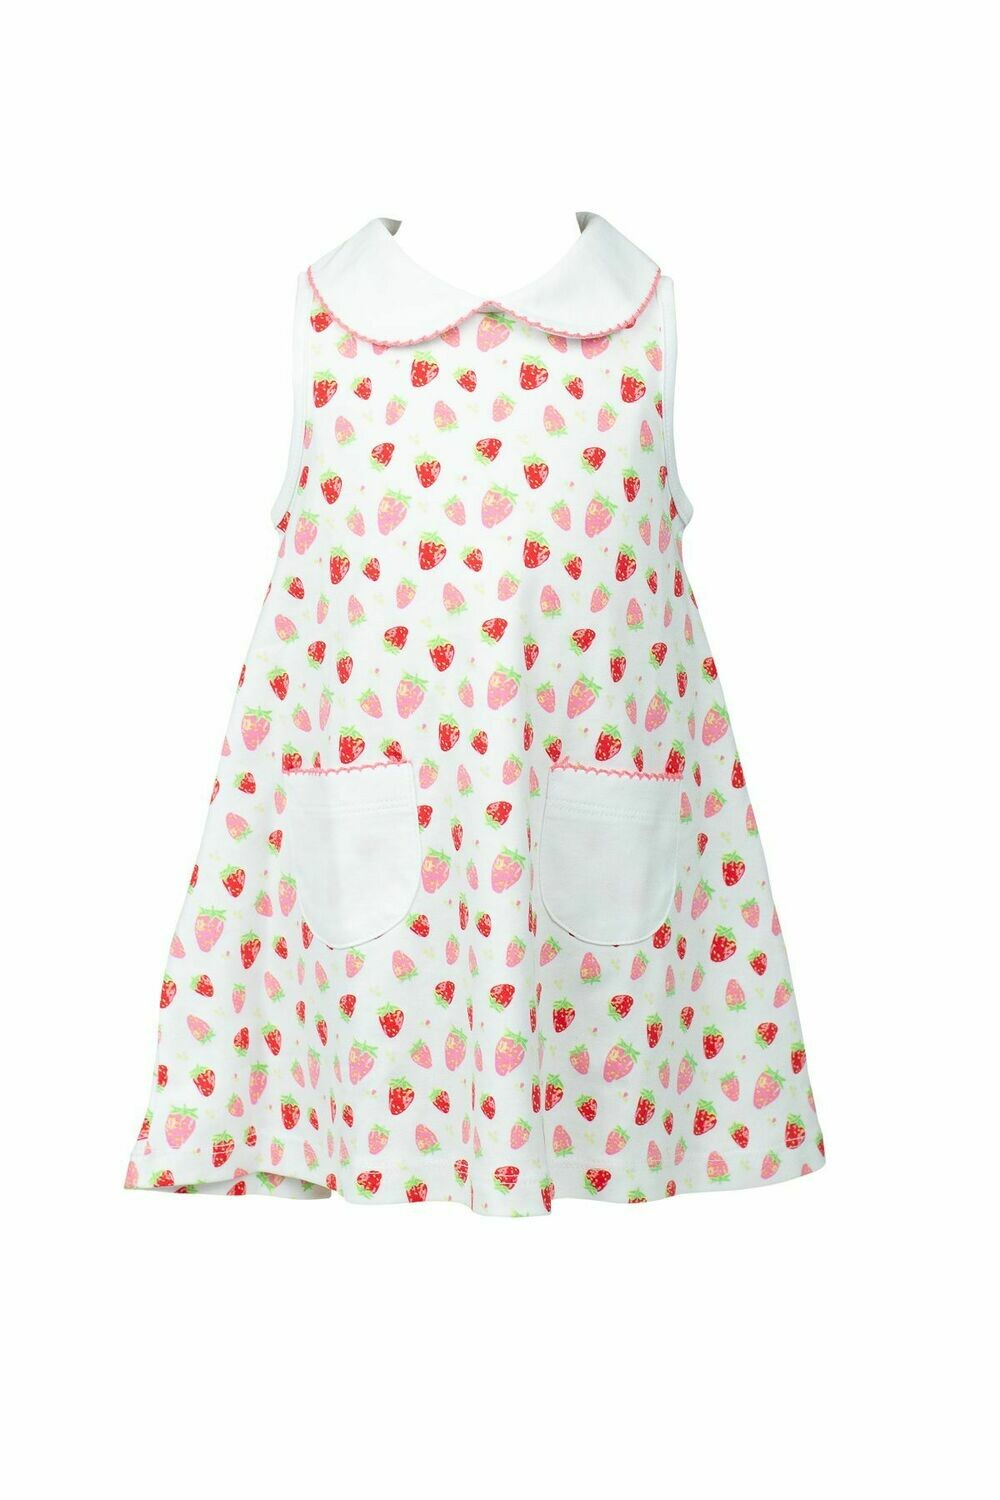 PP Girls A-Line Dress